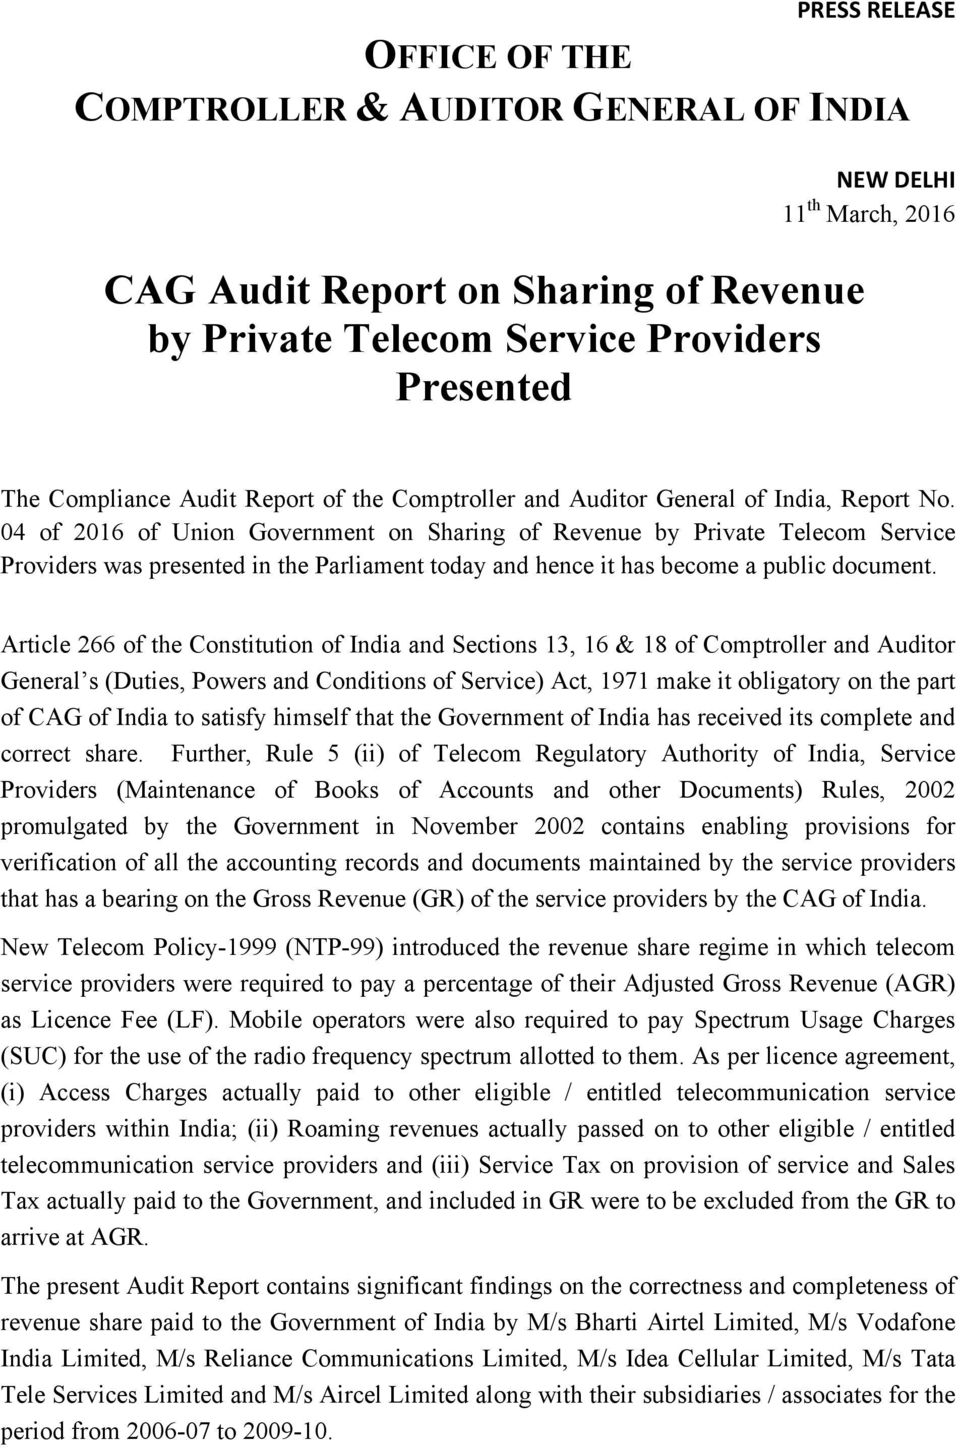 04 of 2016 of Union Government on Sharing of Revenue by Private Telecom Service Providers was presented in the Parliament today and hence it has become a public document.